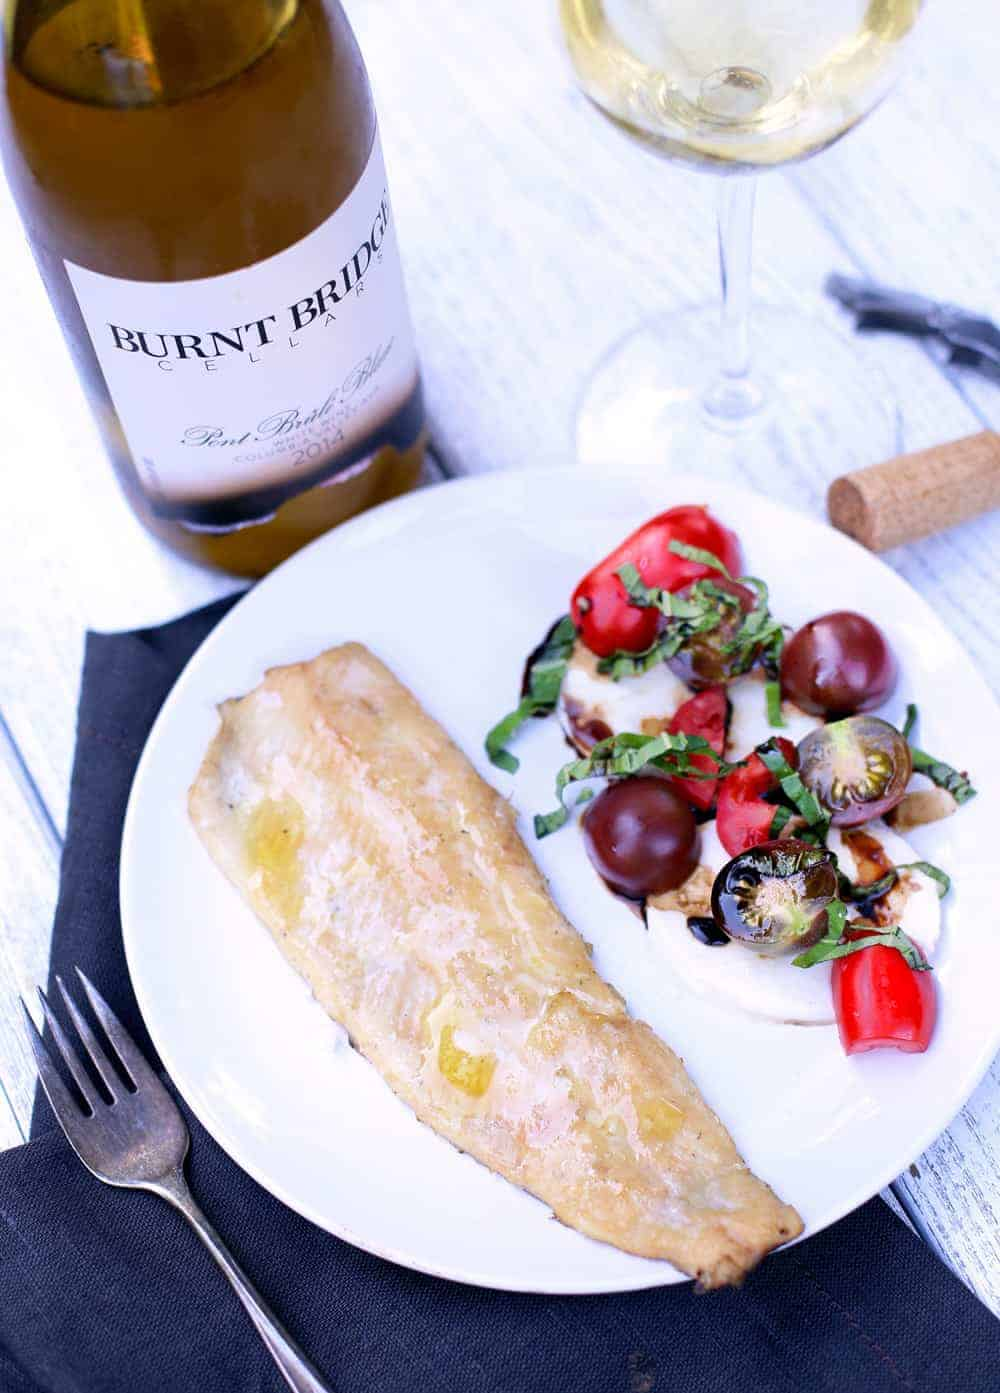 Smoked Trout and Wine Pairing